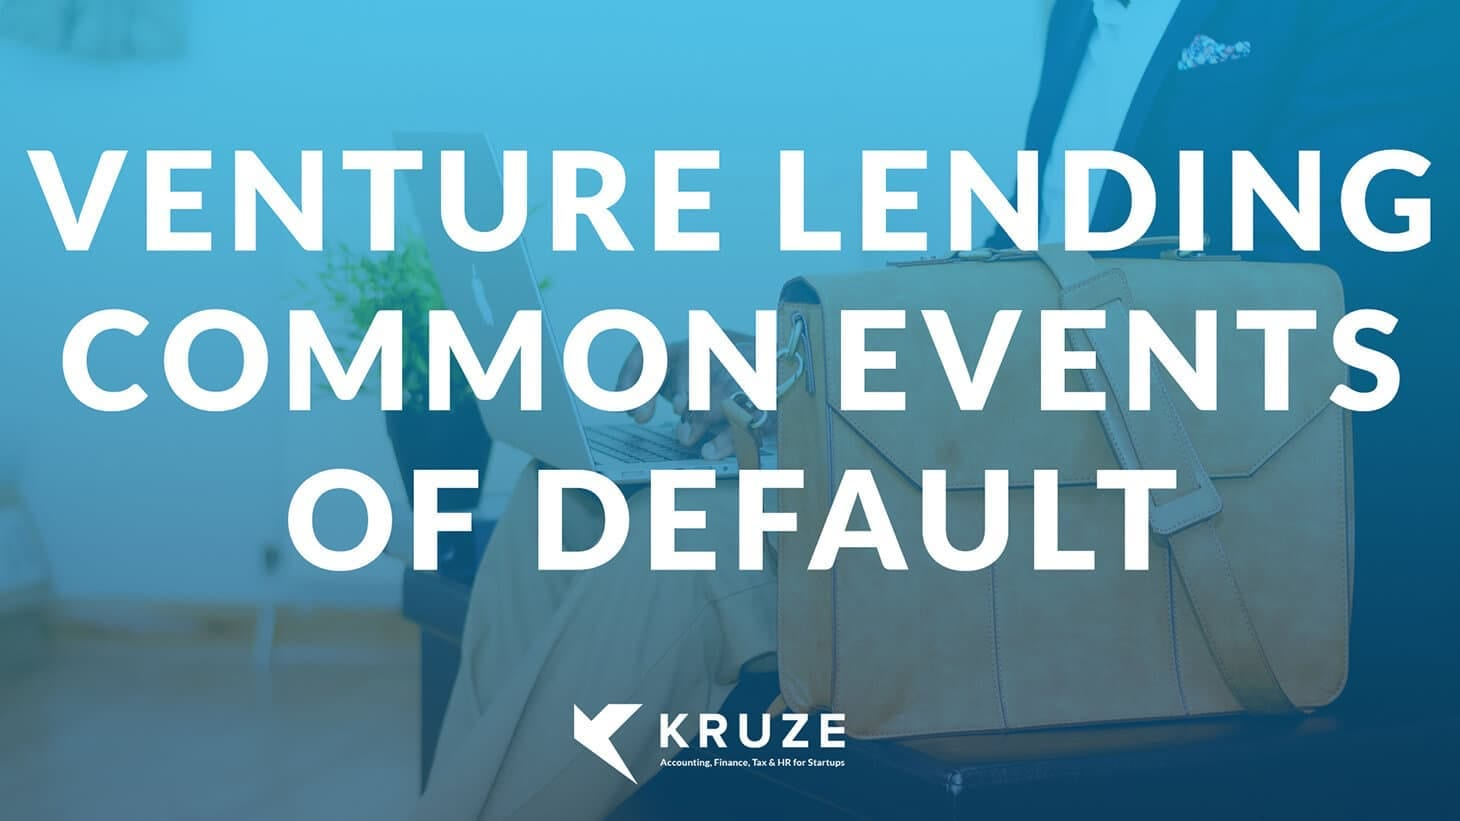 Venture Lending Common Events of Default